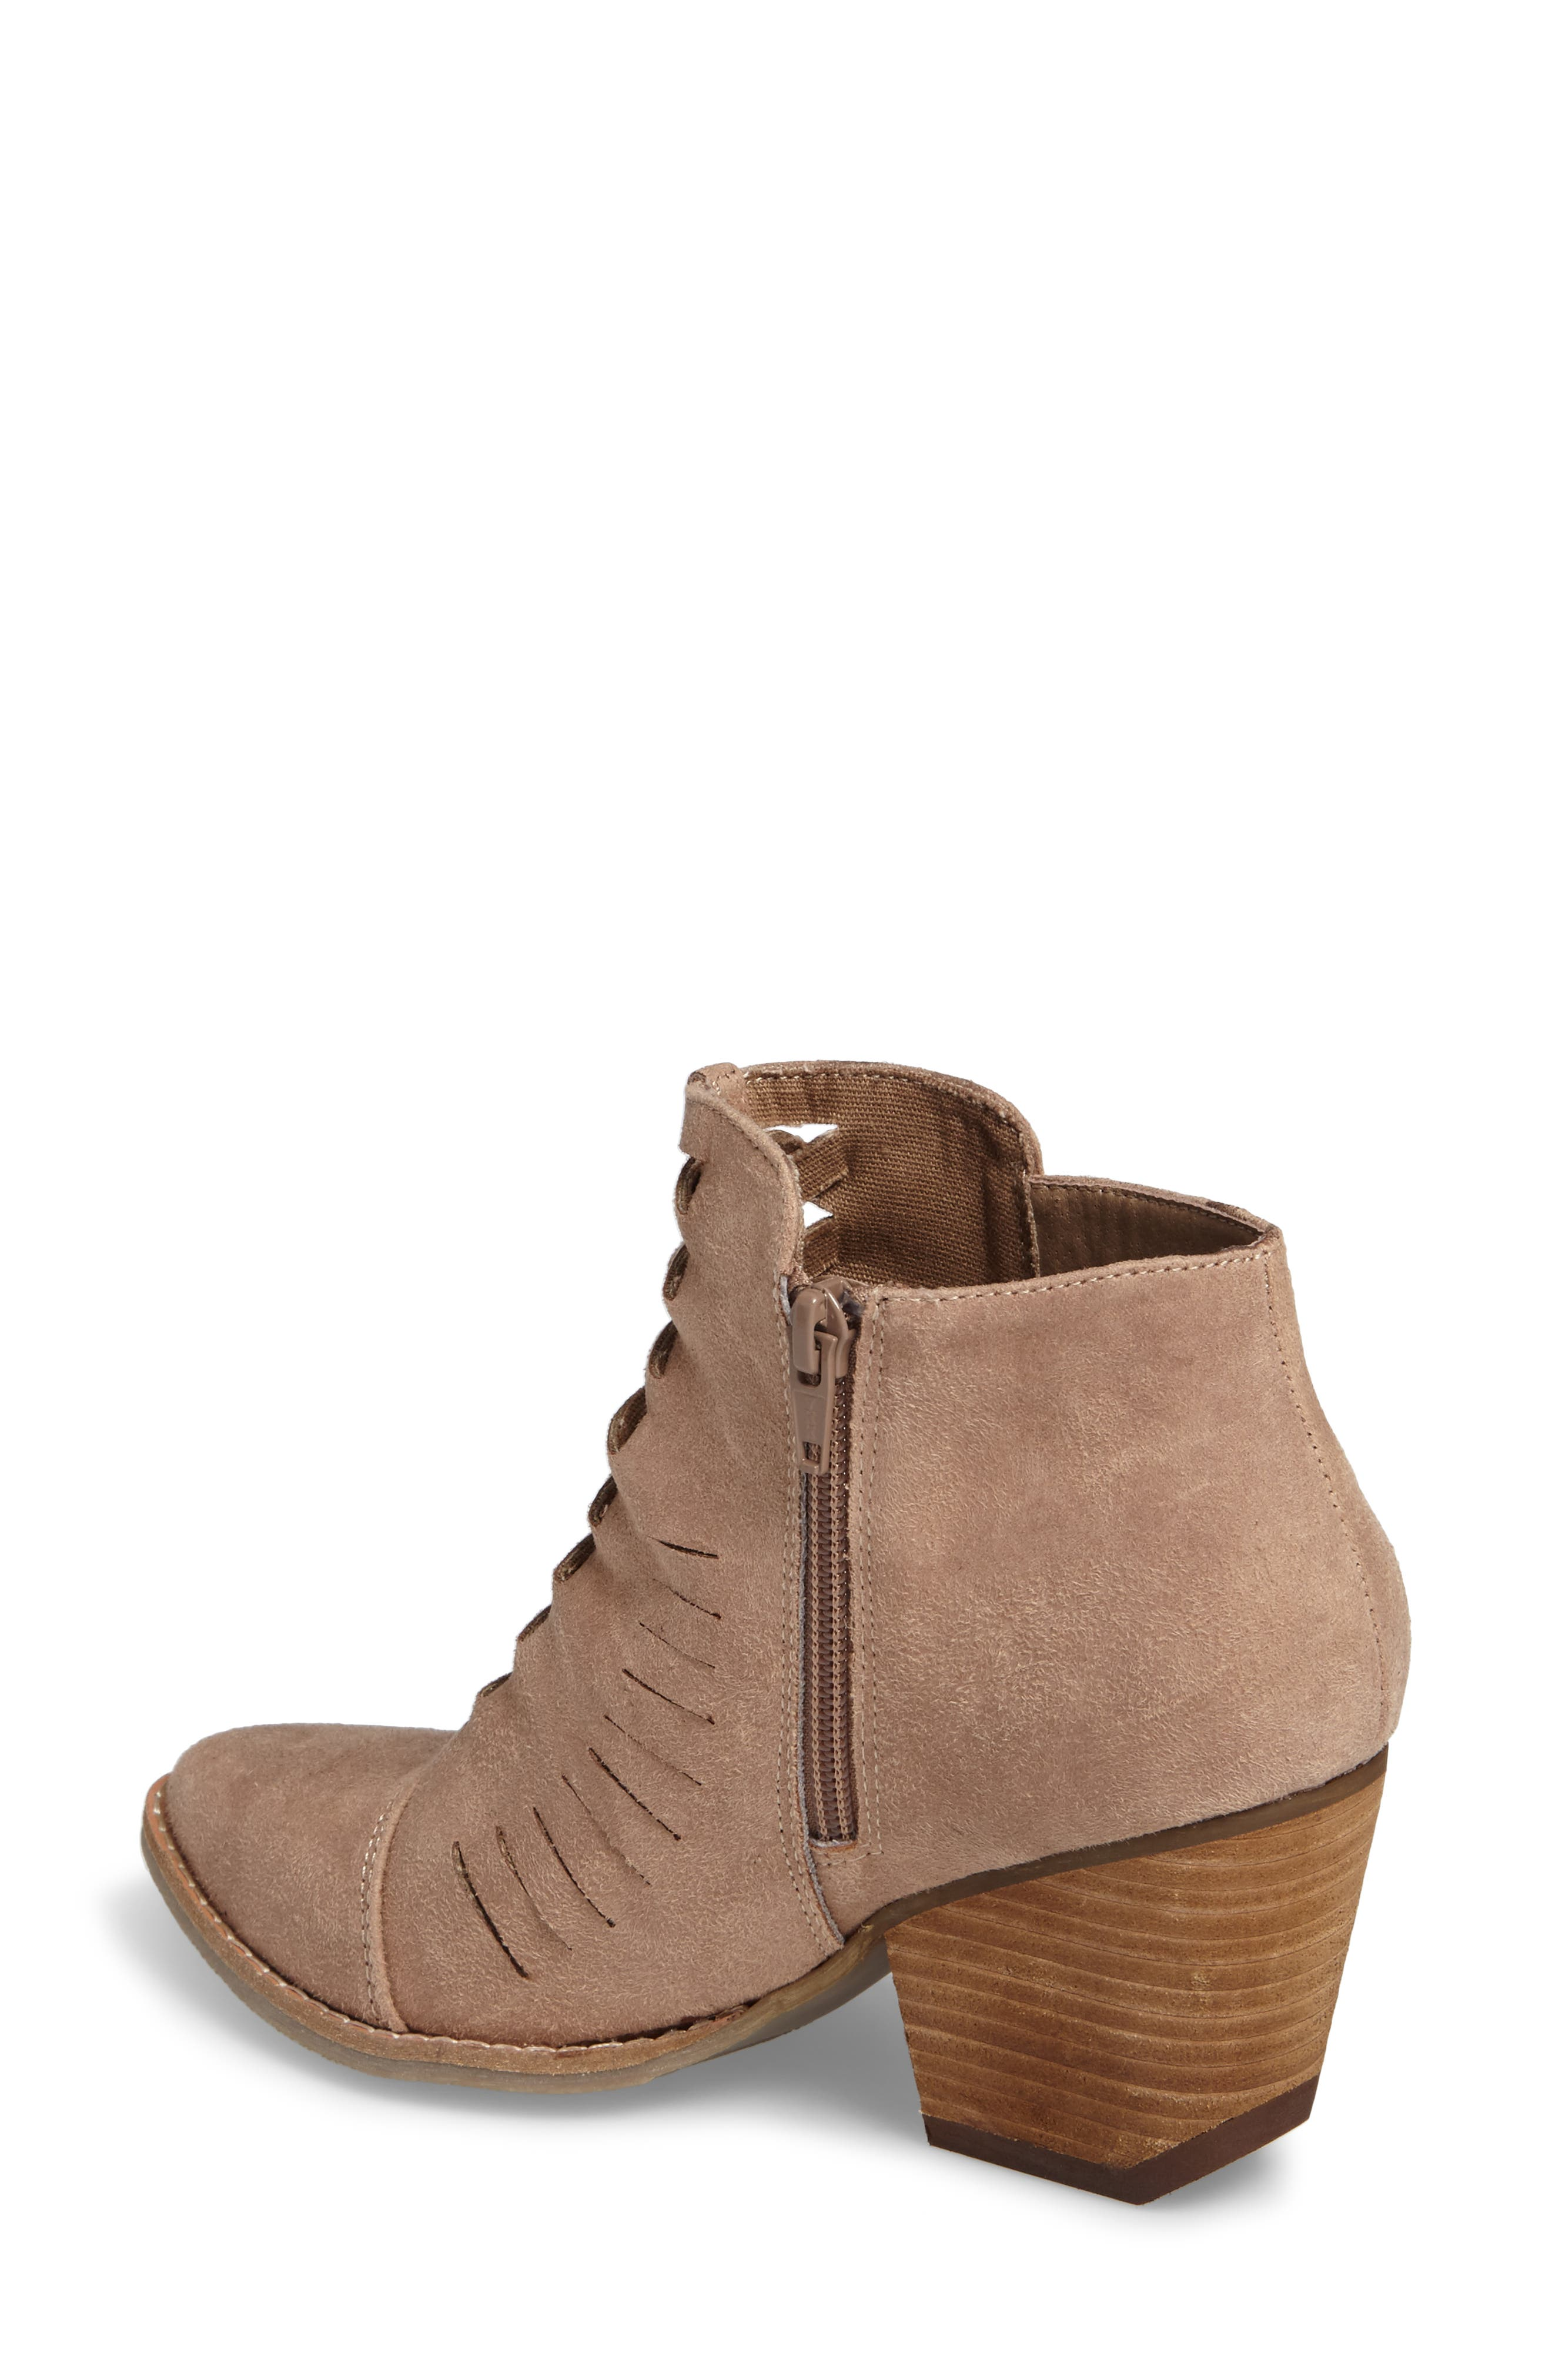 Alternate Image 2  - Coconuts by Matisse Ally Woven Bootie (Women)